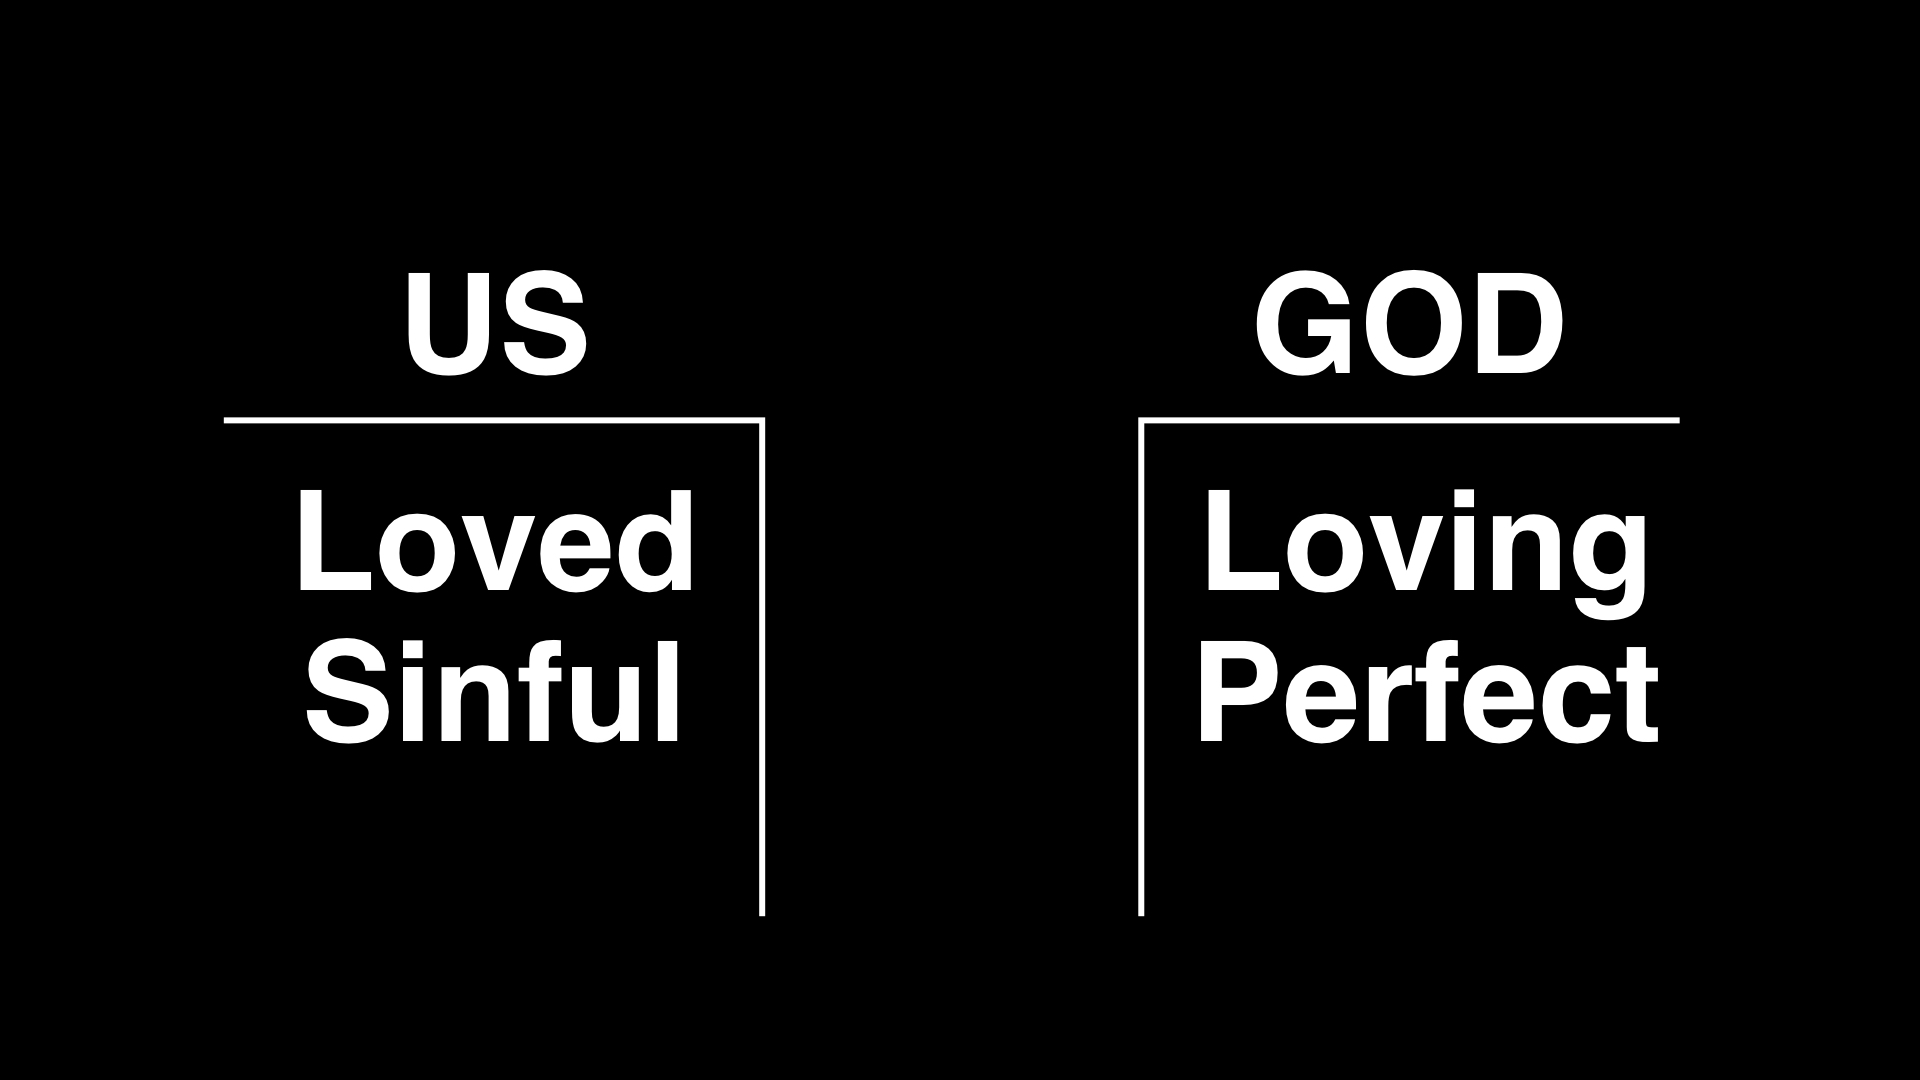 Our sin, then, creates a gap - make that a chasm - between us and God. Sin has destroyed our relationship with God.